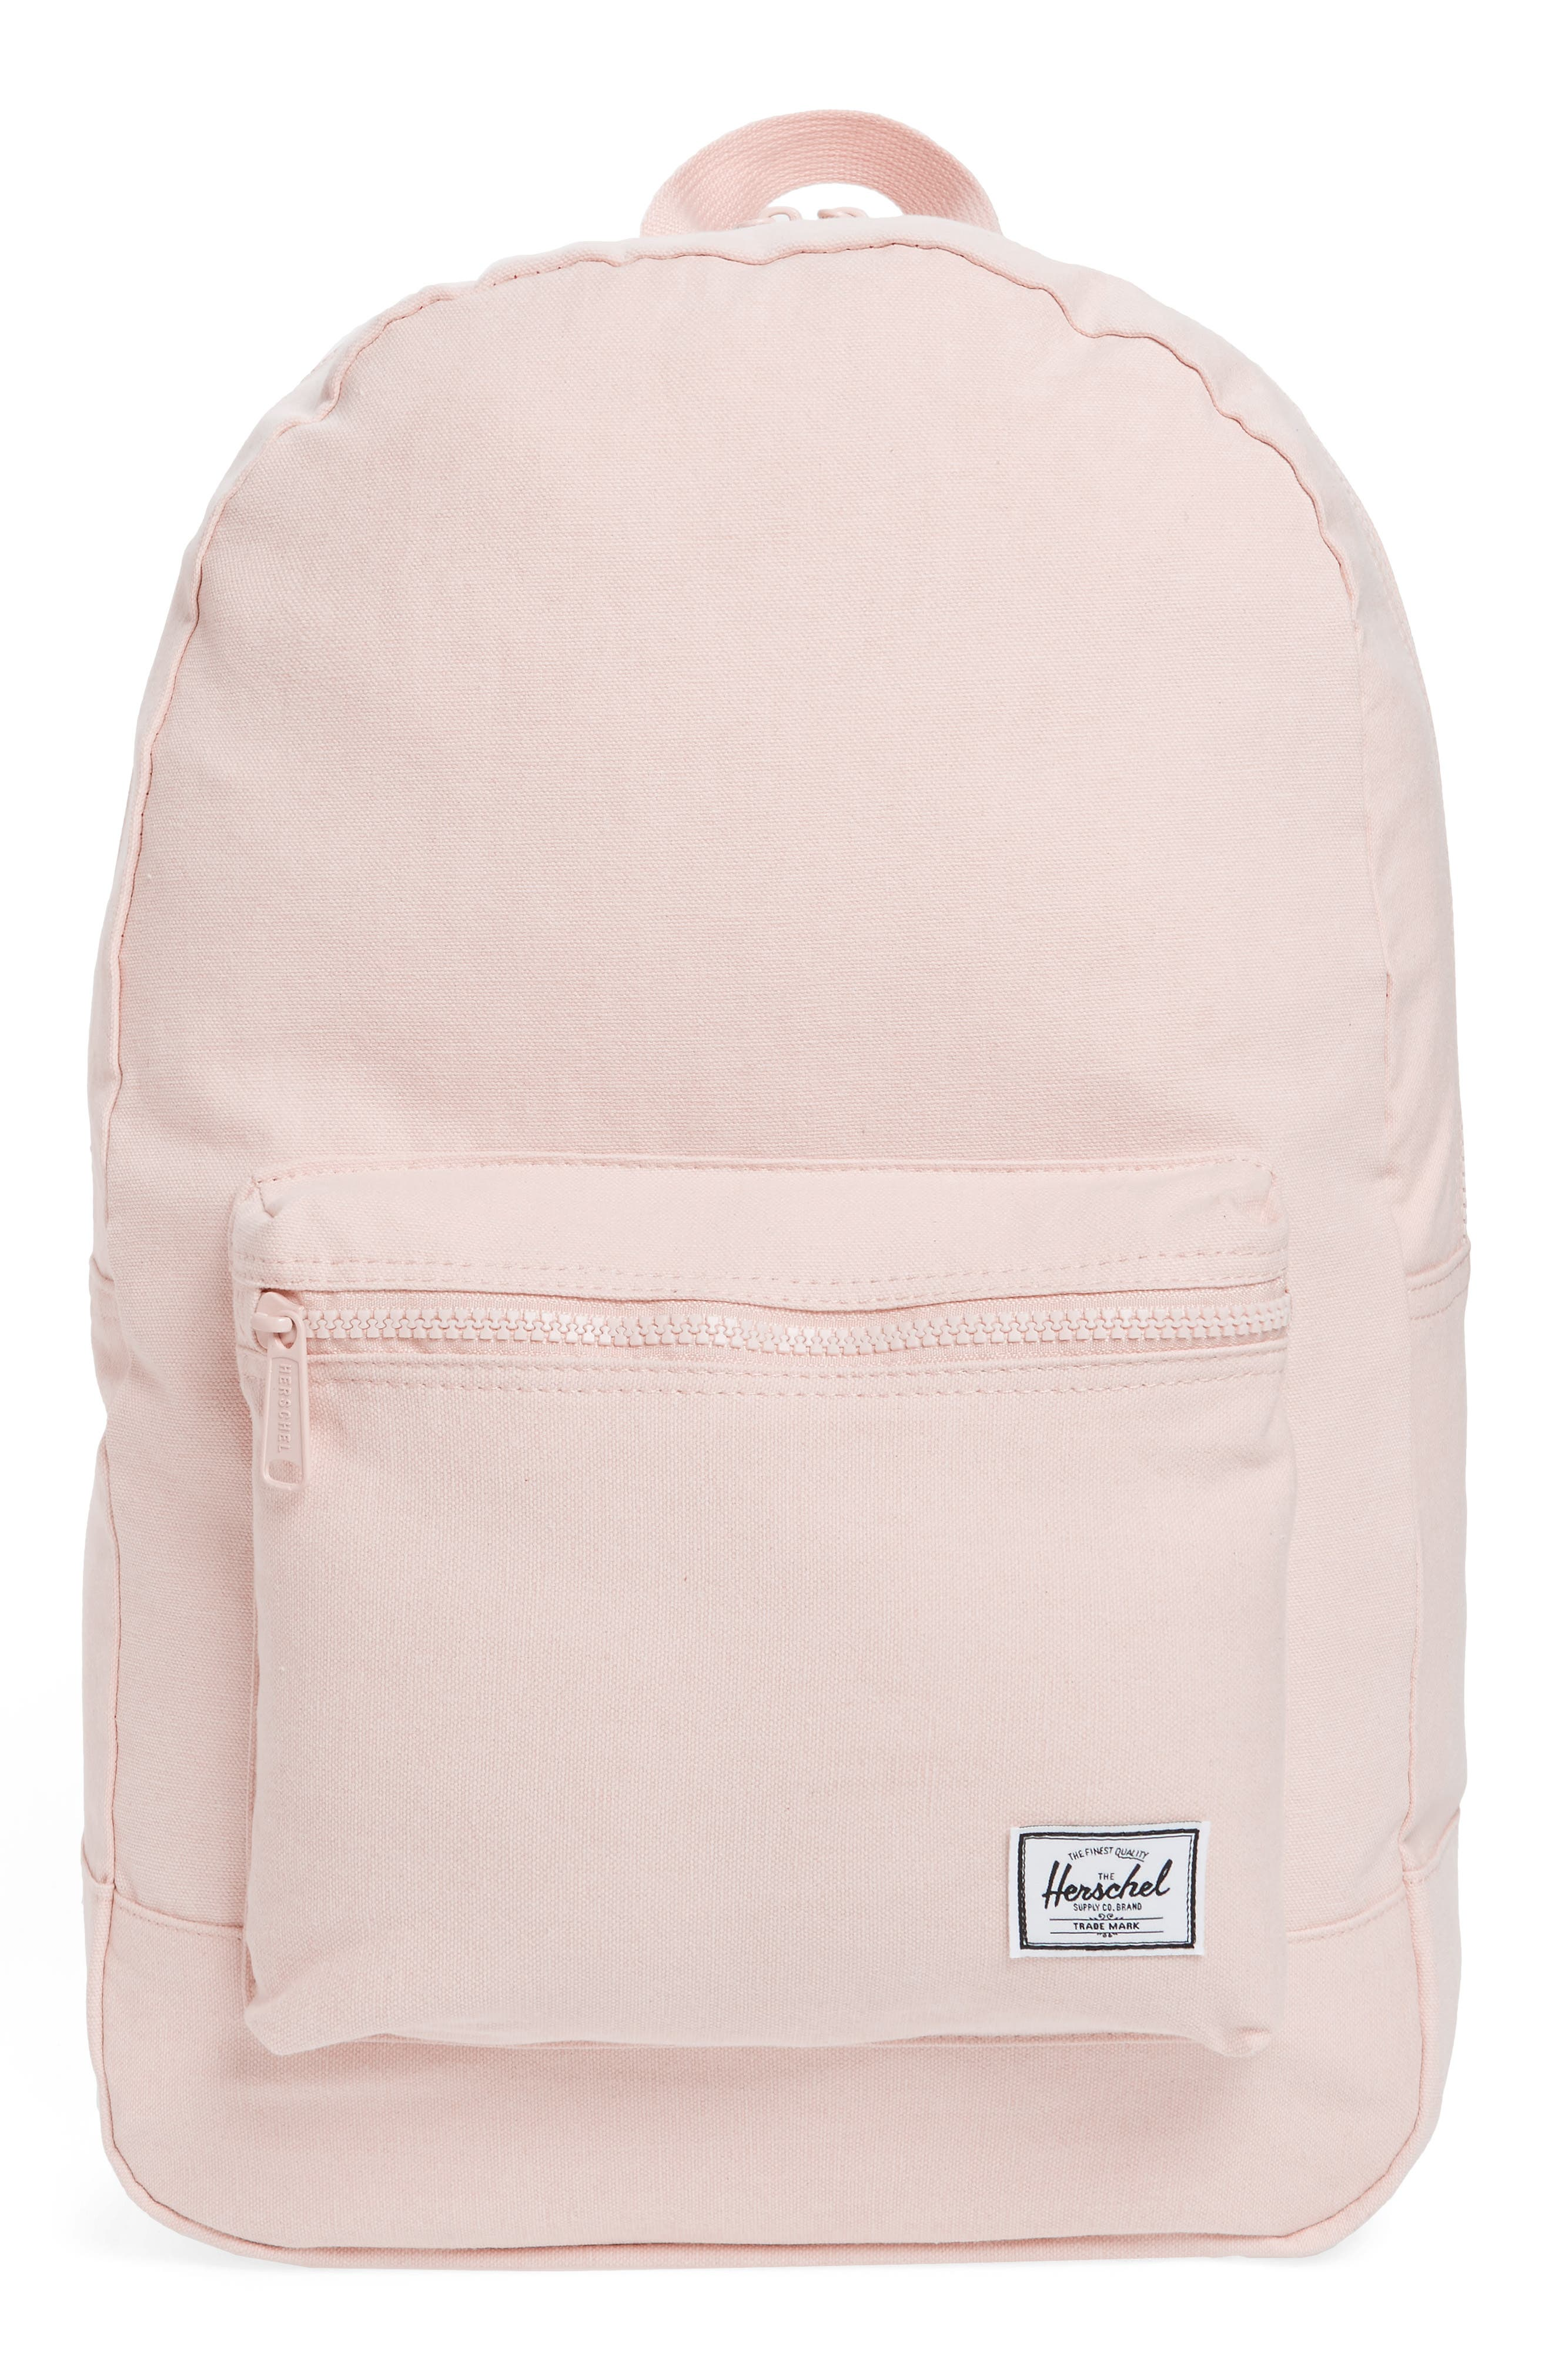 Cotton Casuals Daypack Backpack,                             Main thumbnail 9, color,